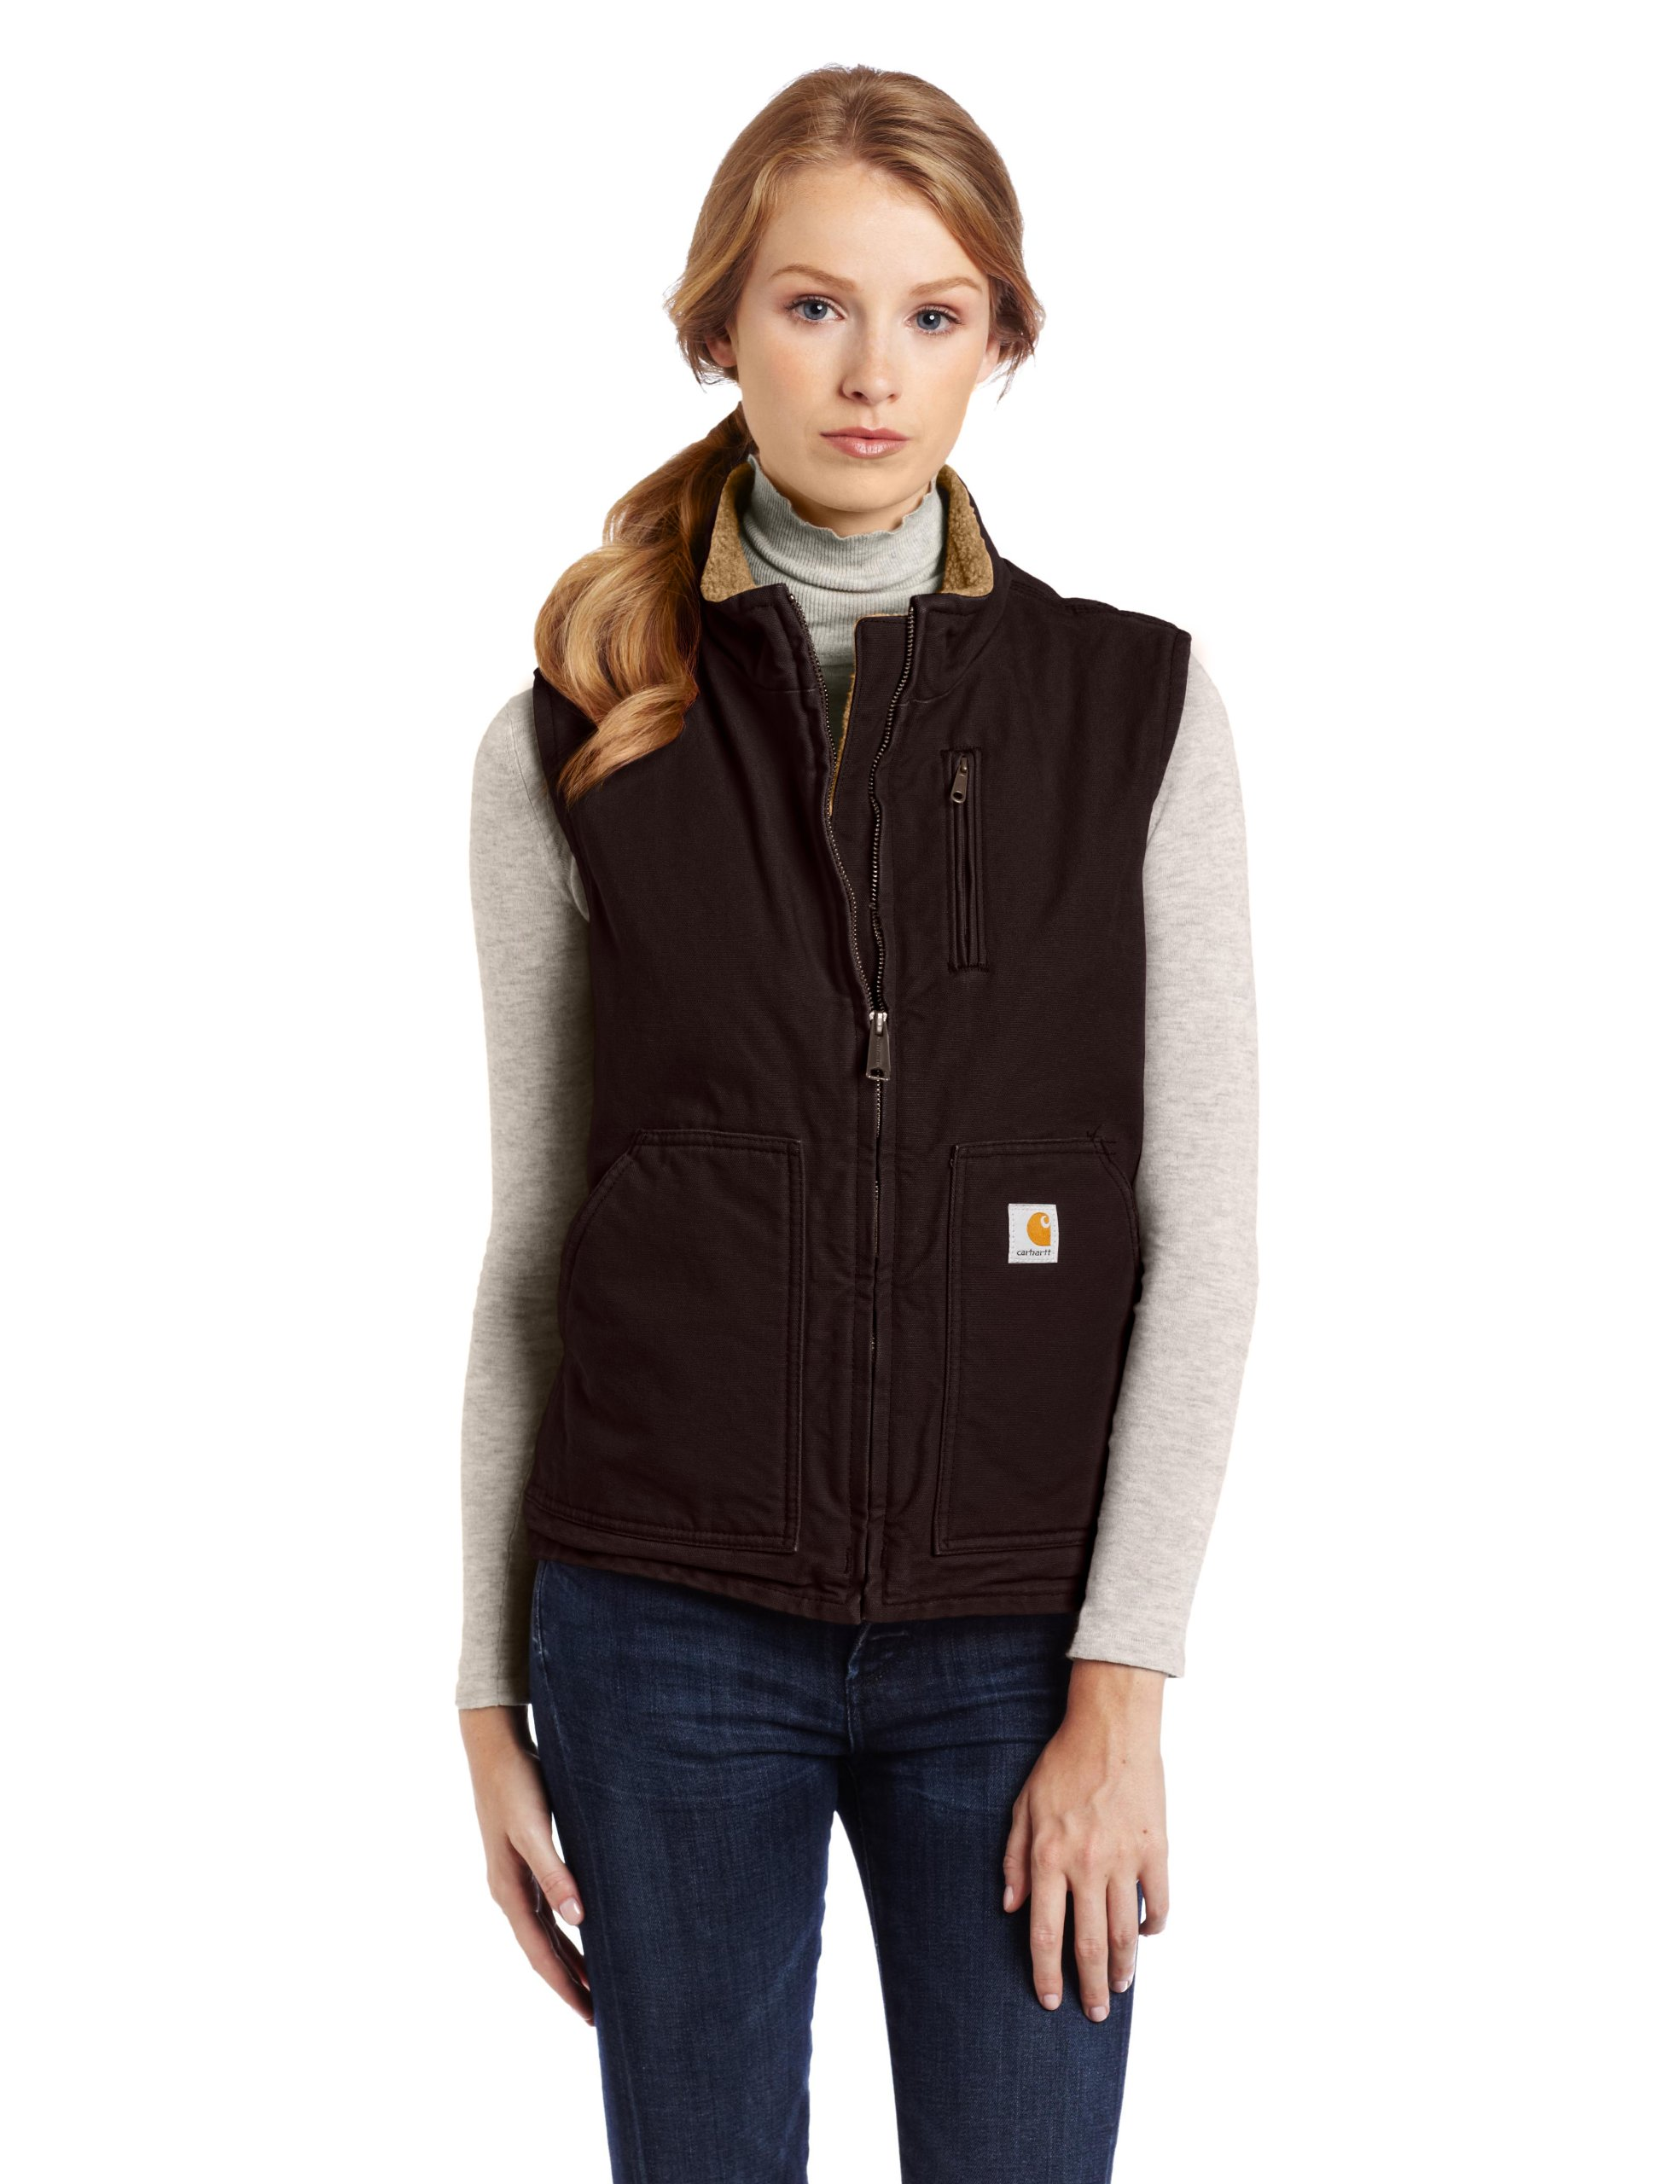 Carhartt Women's Mock Neck Sherpa Lined Vest (Regular and Plus Sizes), Dark Brown, Medium by Carhartt